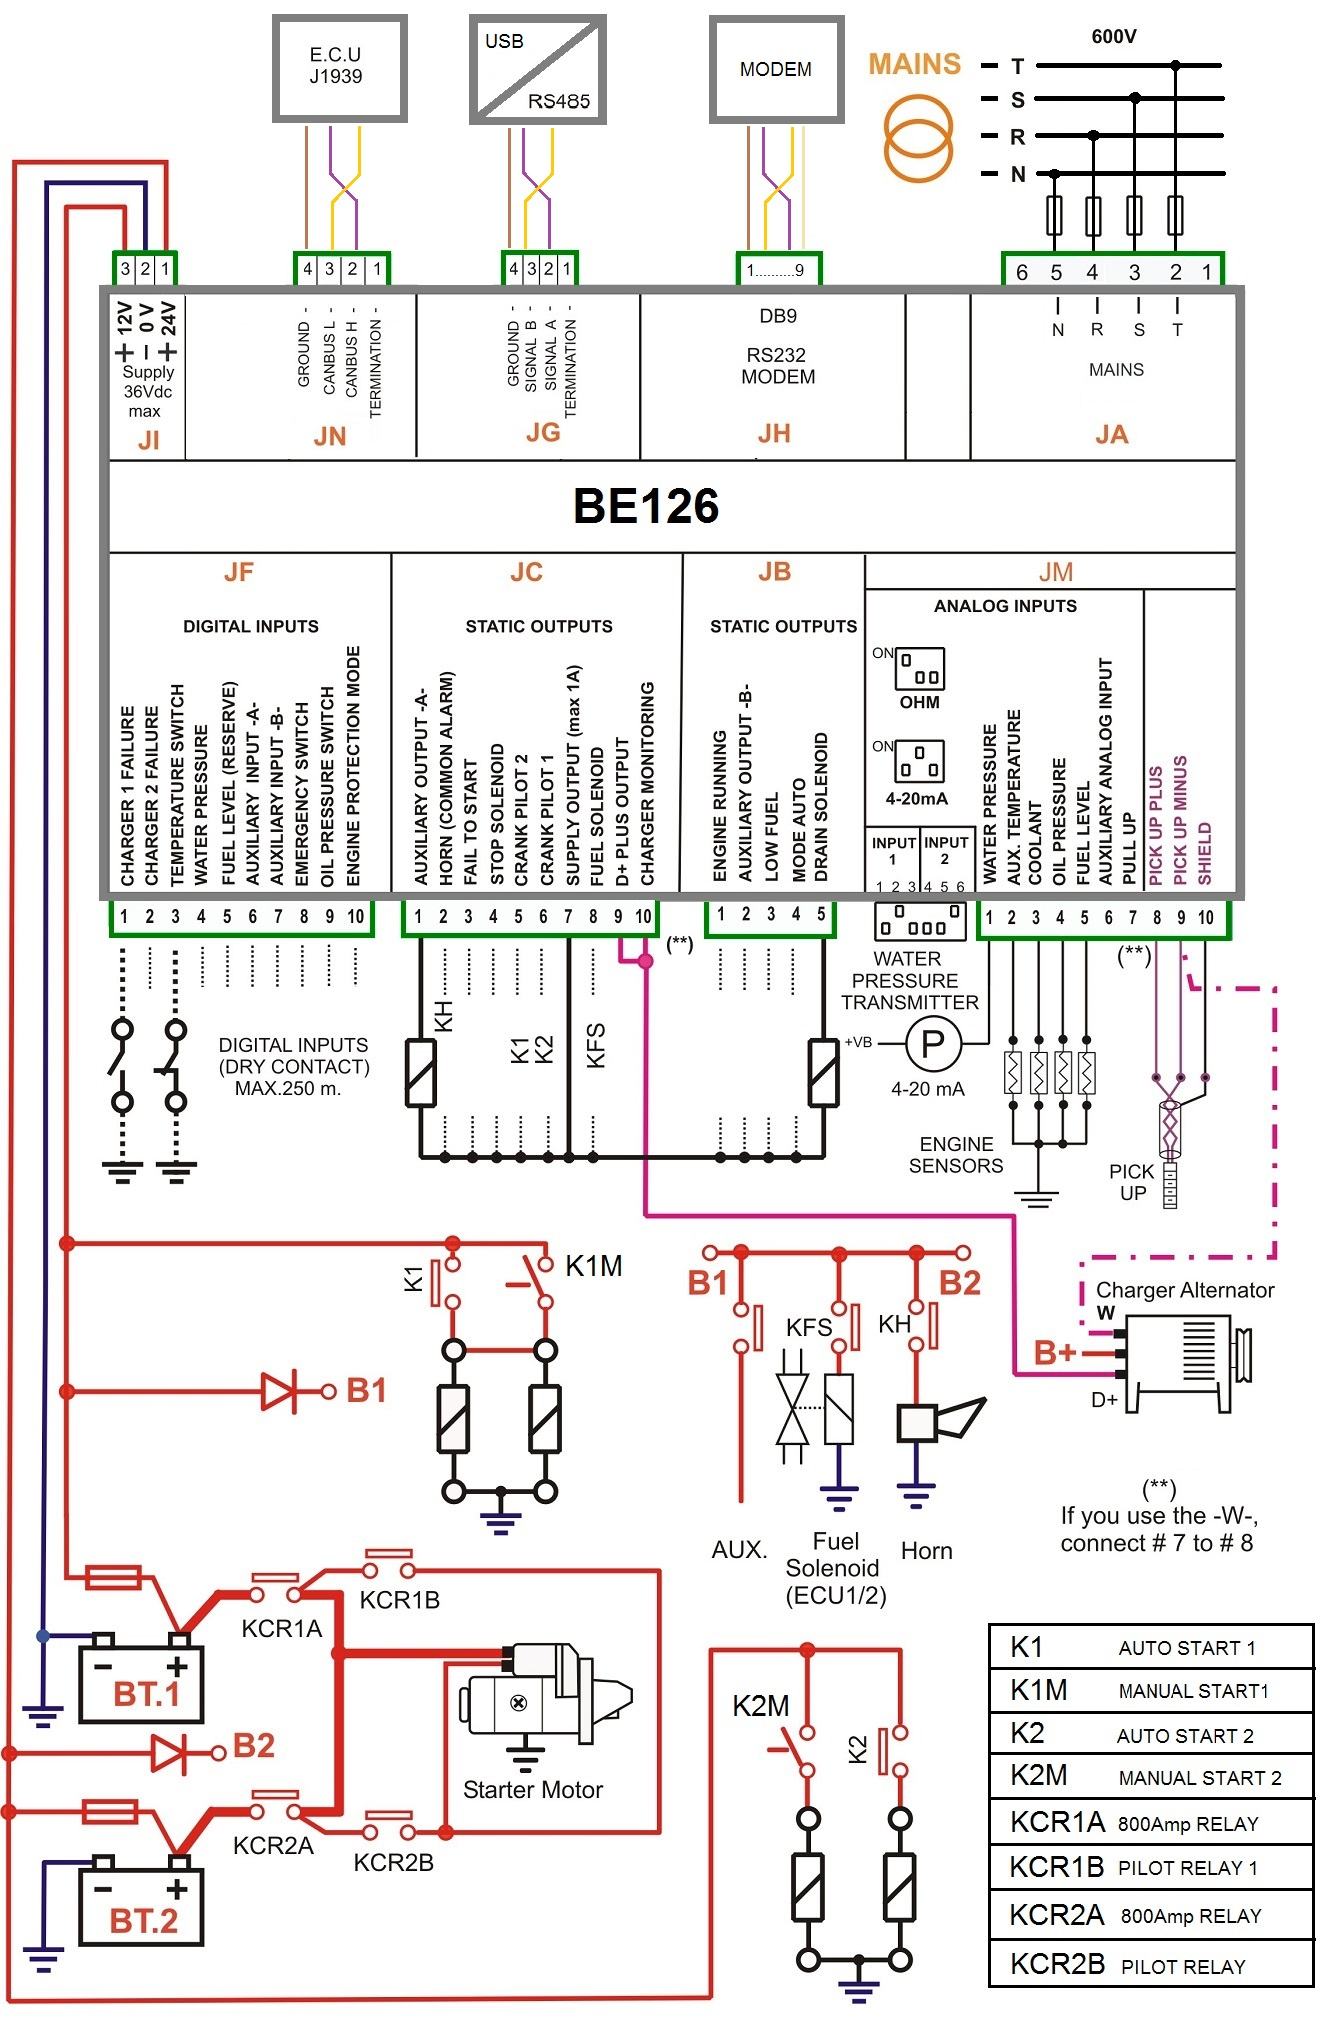 Fire Pump Controller Wiring Diagram Genset Understanding Motor Diagrams